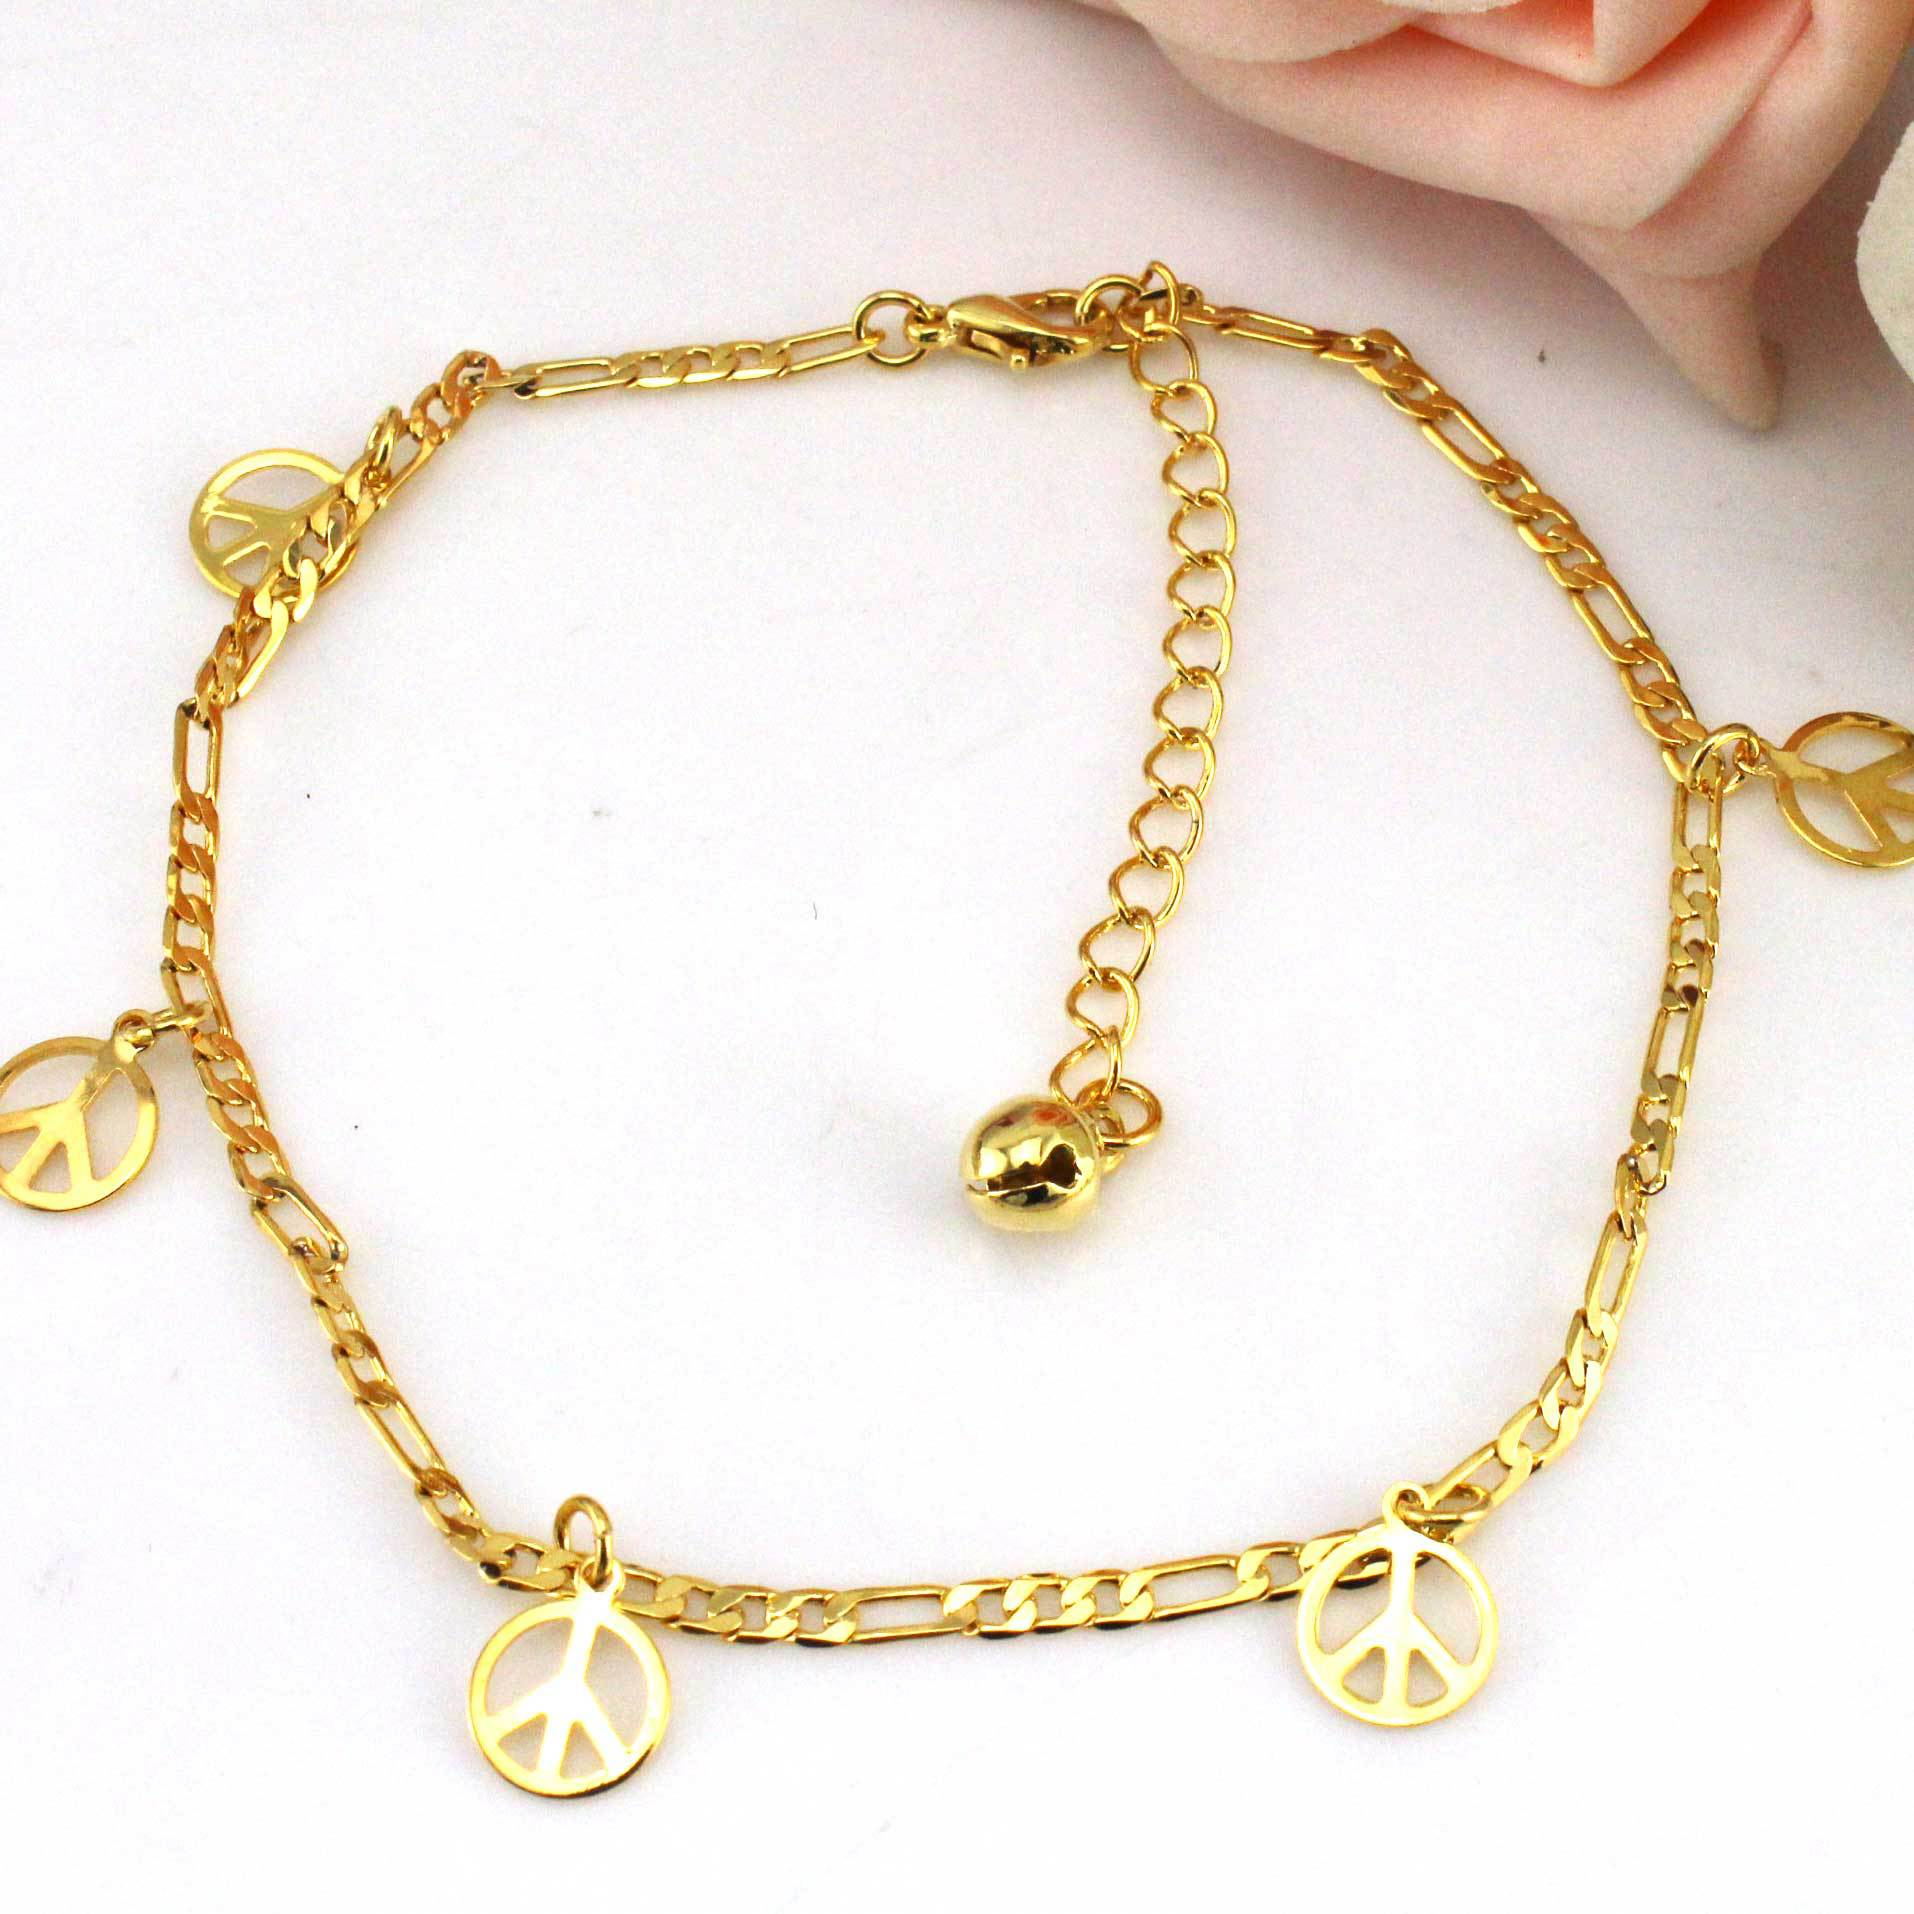 heart gold foot pulso women set bracelet ankle evil unique jewelry products and oro with anklet de wrist filled bracelets charms pie design corazon corazones